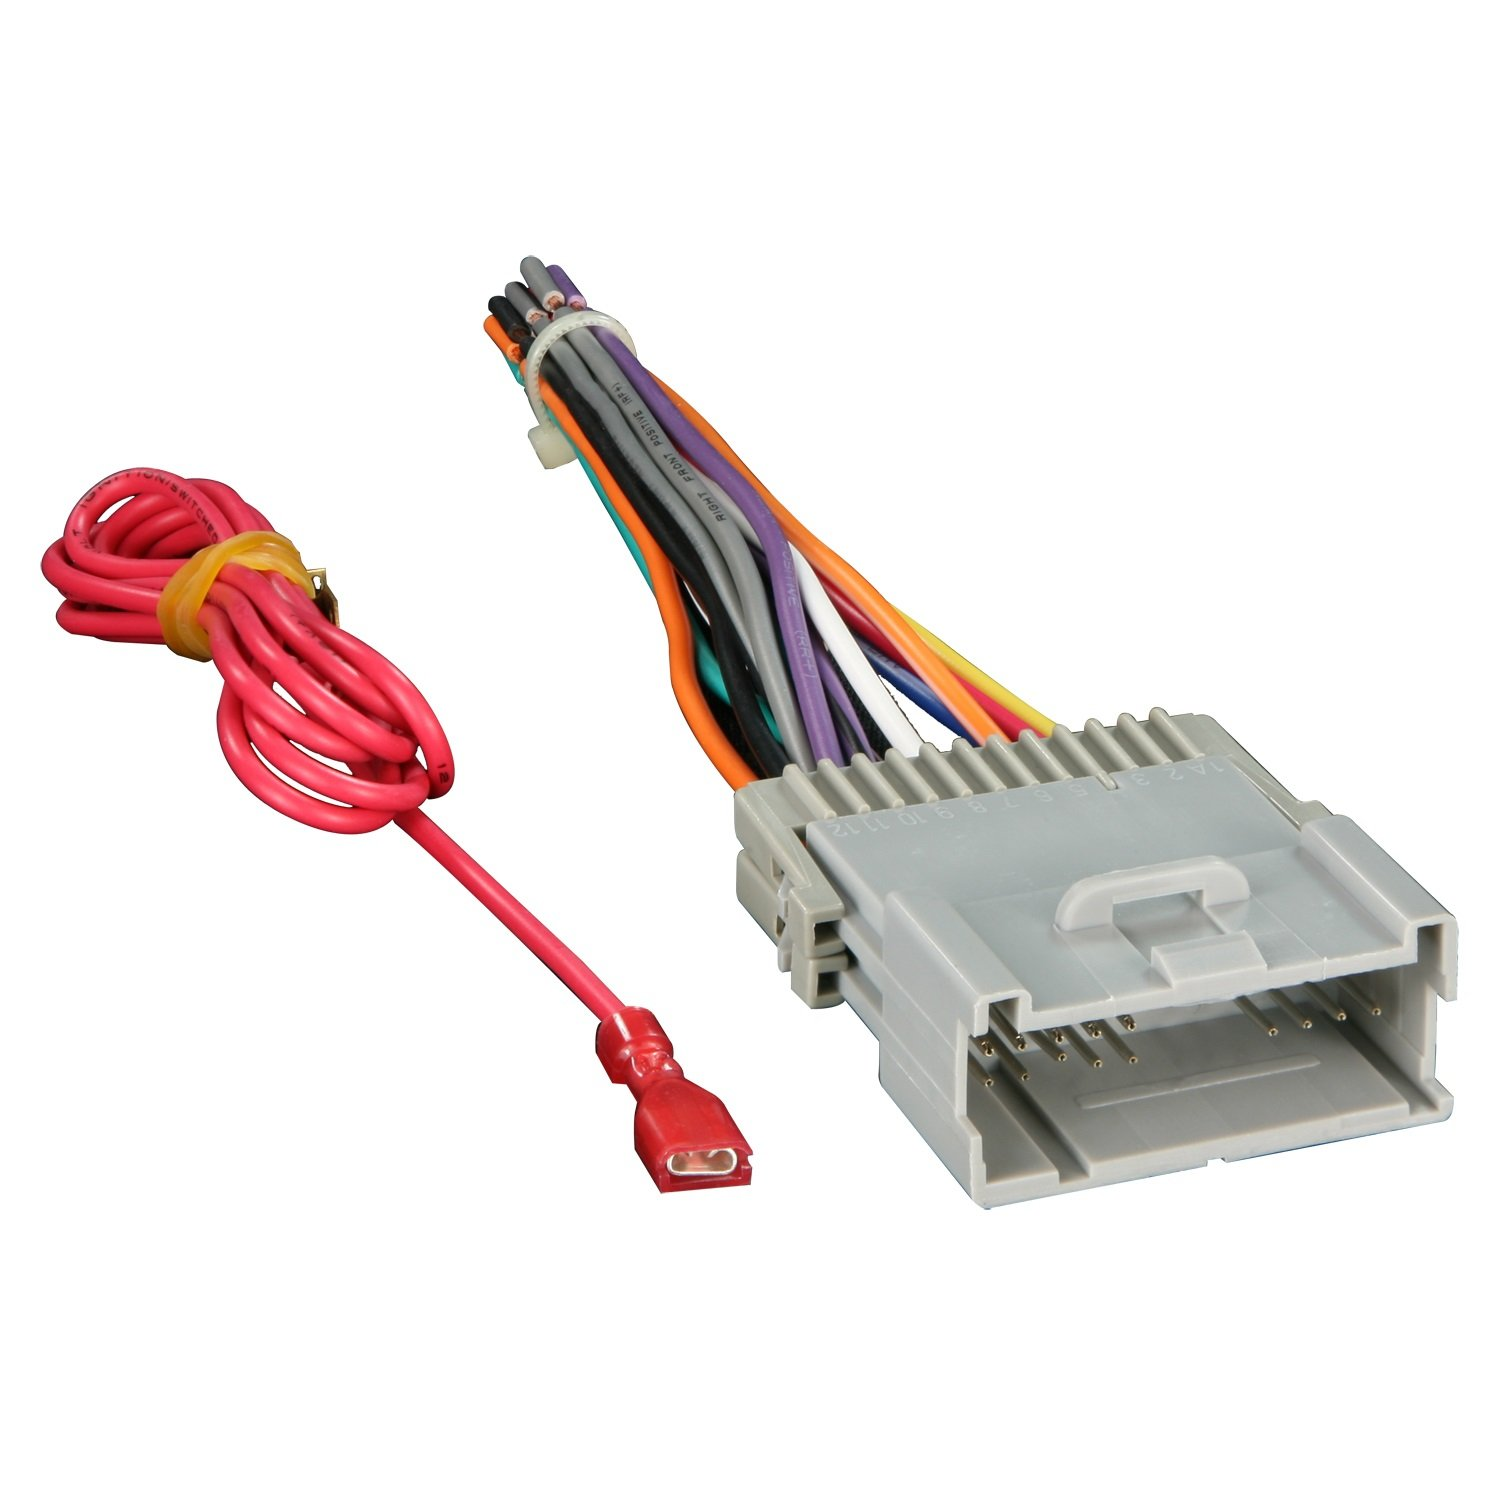 61eewxp9orL._SL1500_ amazon com metra 70 2003 radio wiring harness for gm 98 08  at bakdesigns.co